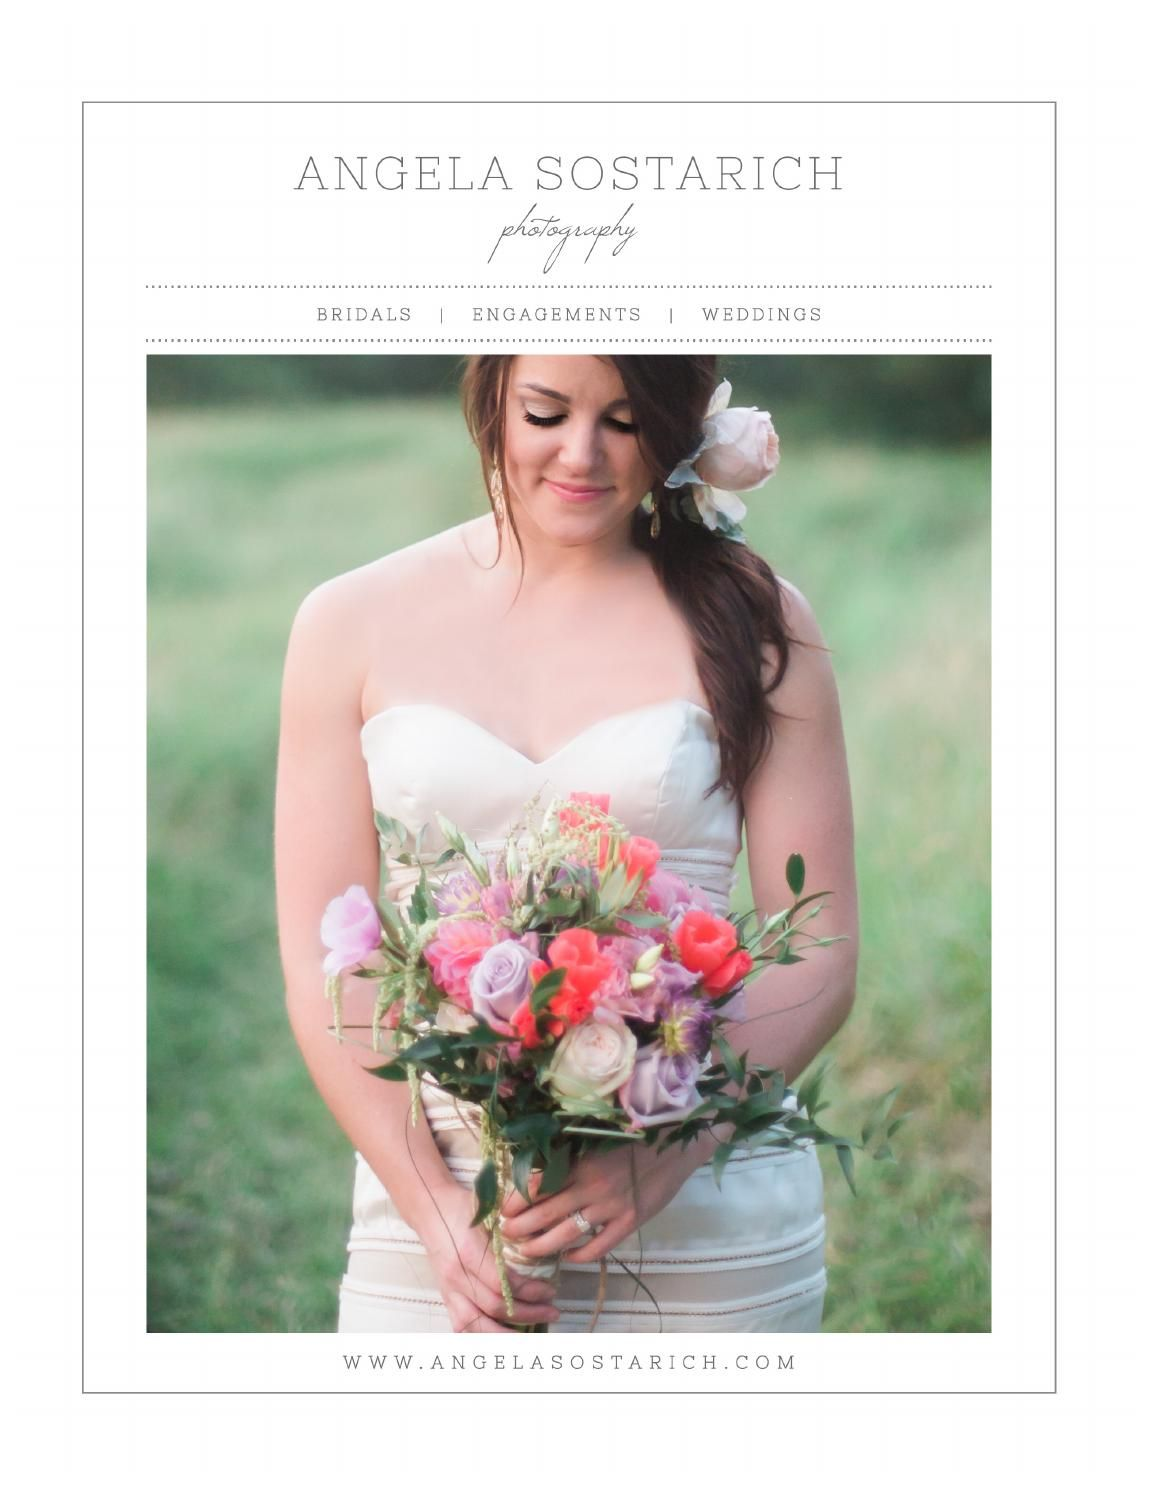 Wedding Photography Magazine Templates Pricing Guide Price List New Client Studio Packet